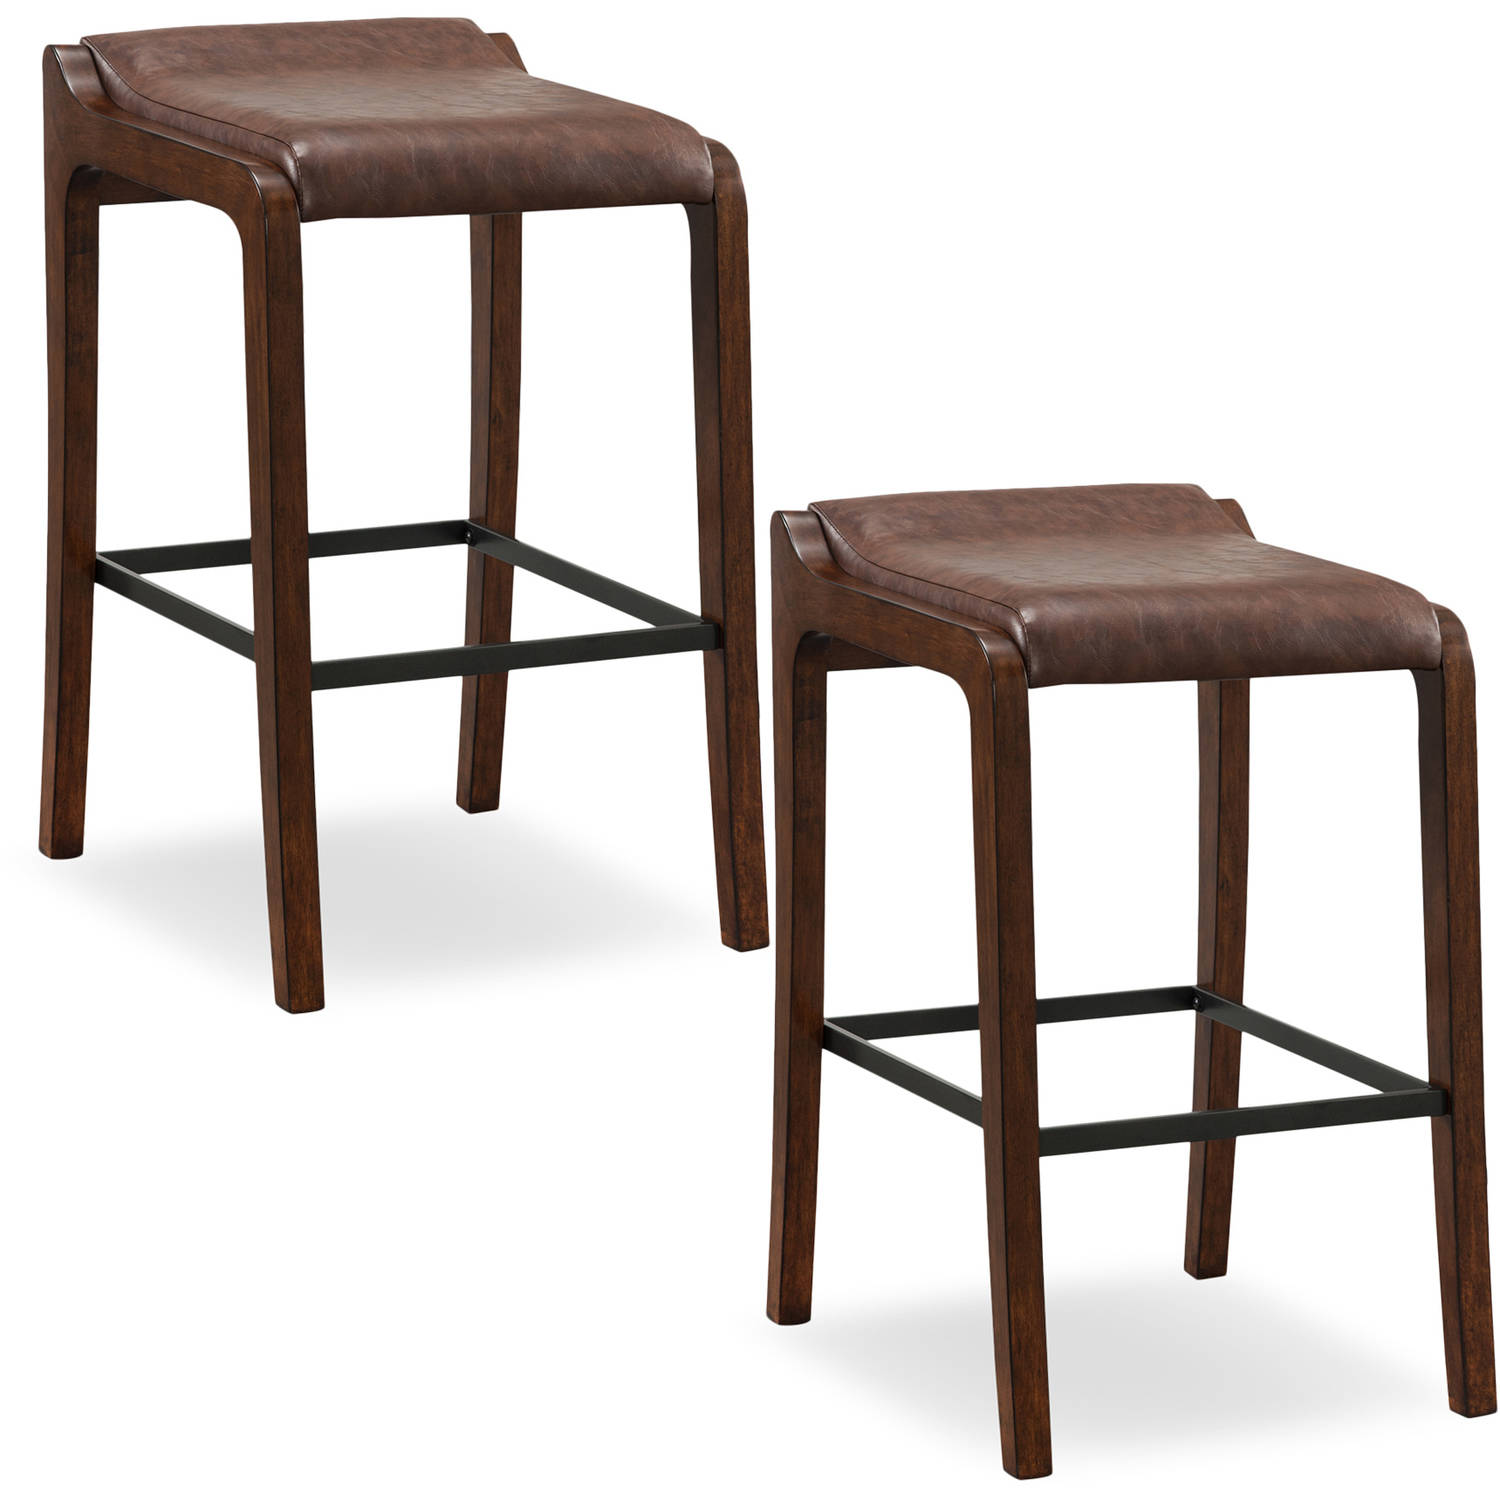 Leick Home 10117SN SB Wood Fastback Bar Height Stool with Faux Leather Seat, Set of 2, Multiple Colors by Leick Furniture